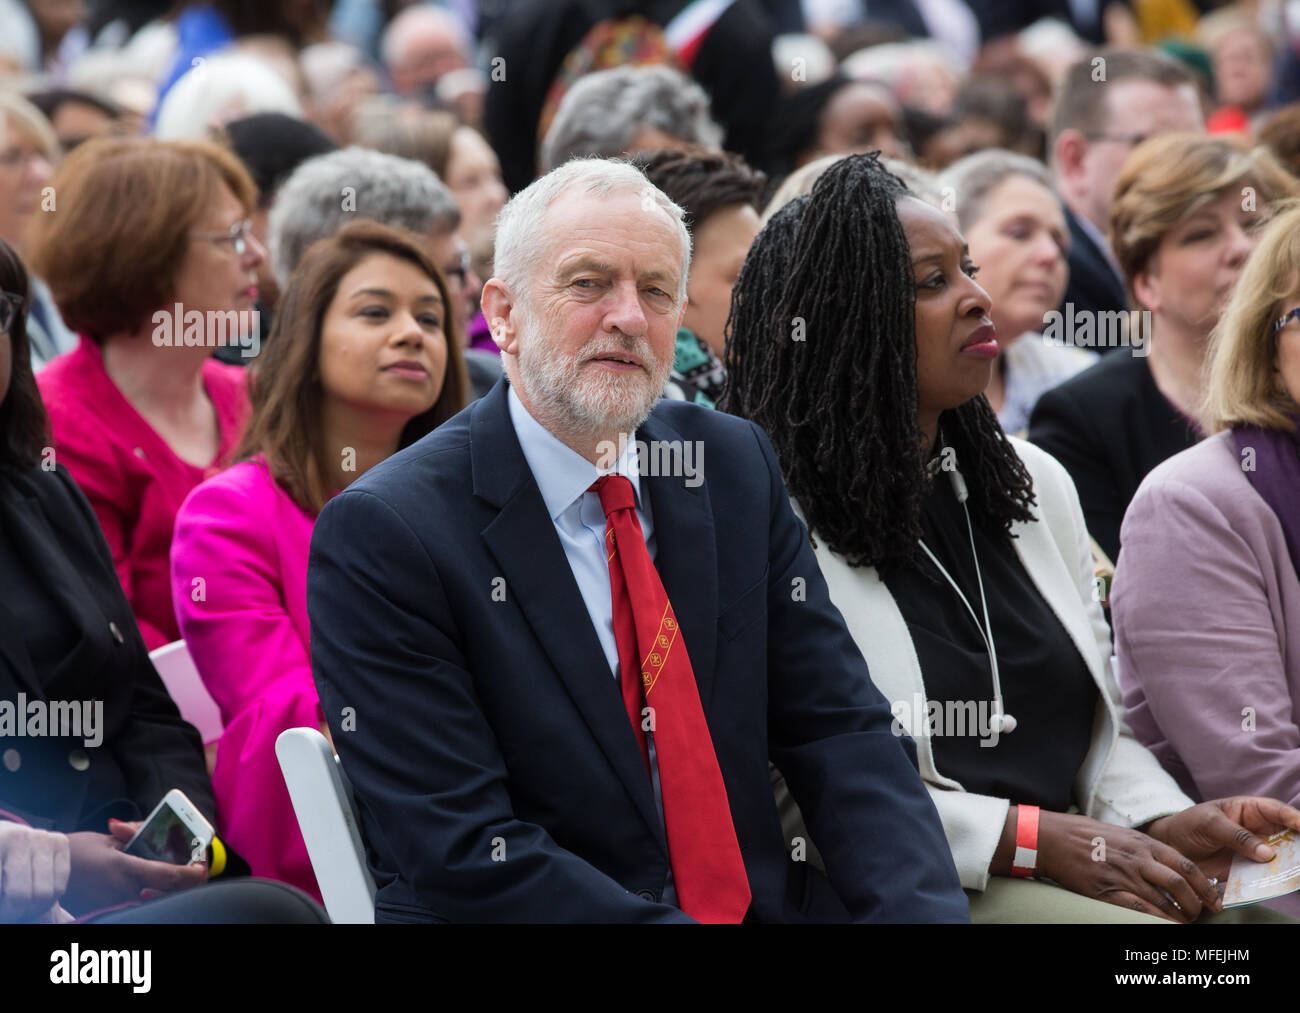 Leader of the Labour Party, Jeremy Corbyn, at the unveiling of the Statue of Millicent Fawcett to celebrate 100 years of women's suffrage. - Stock Image